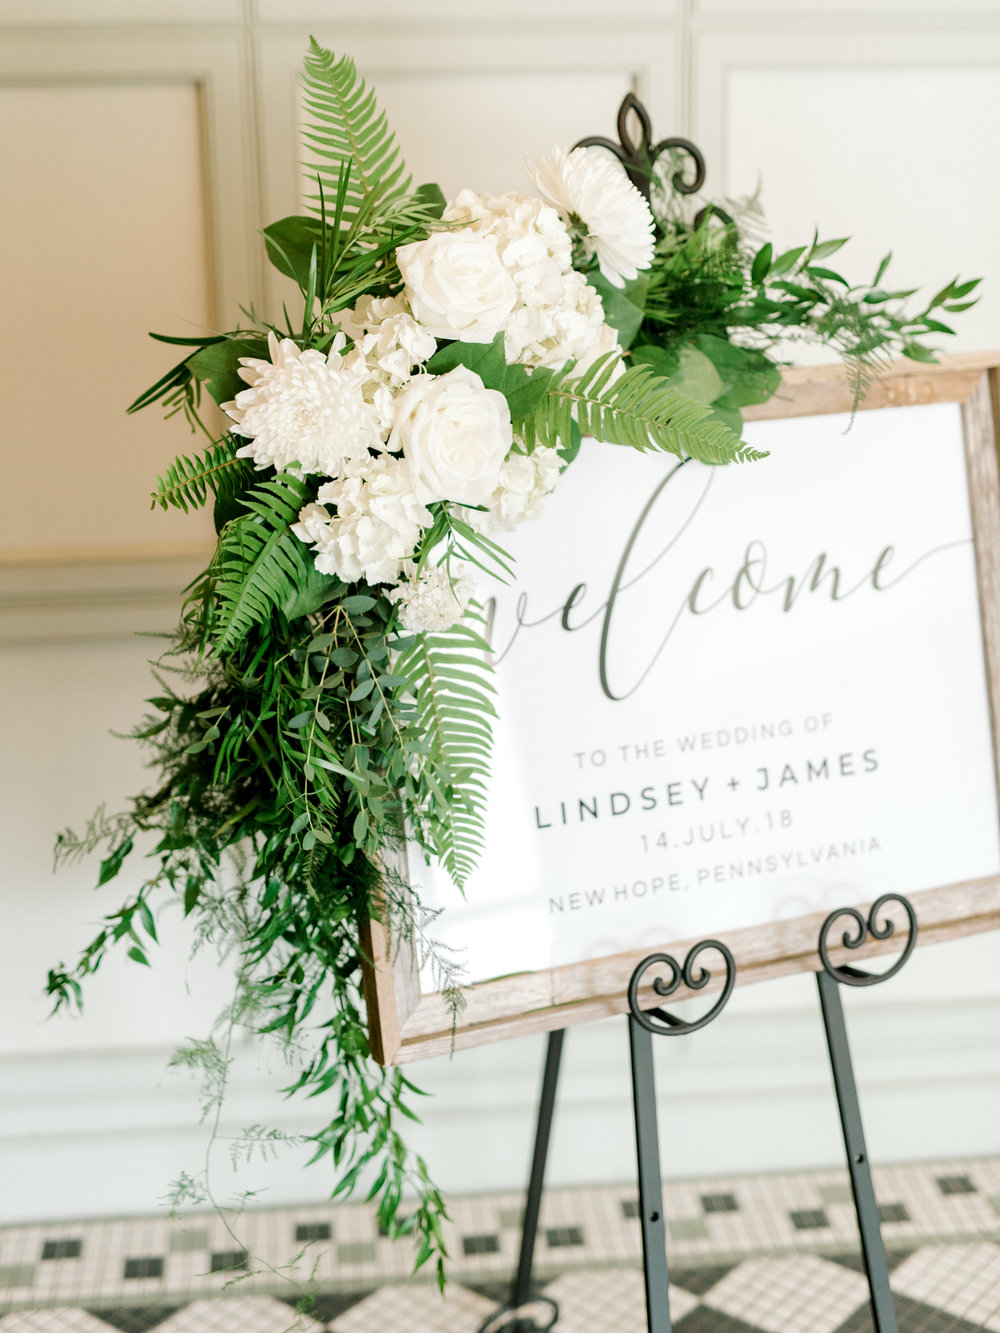 Adding some wild greenery to your signs is a great way to add a little extra to your modern wedding day.